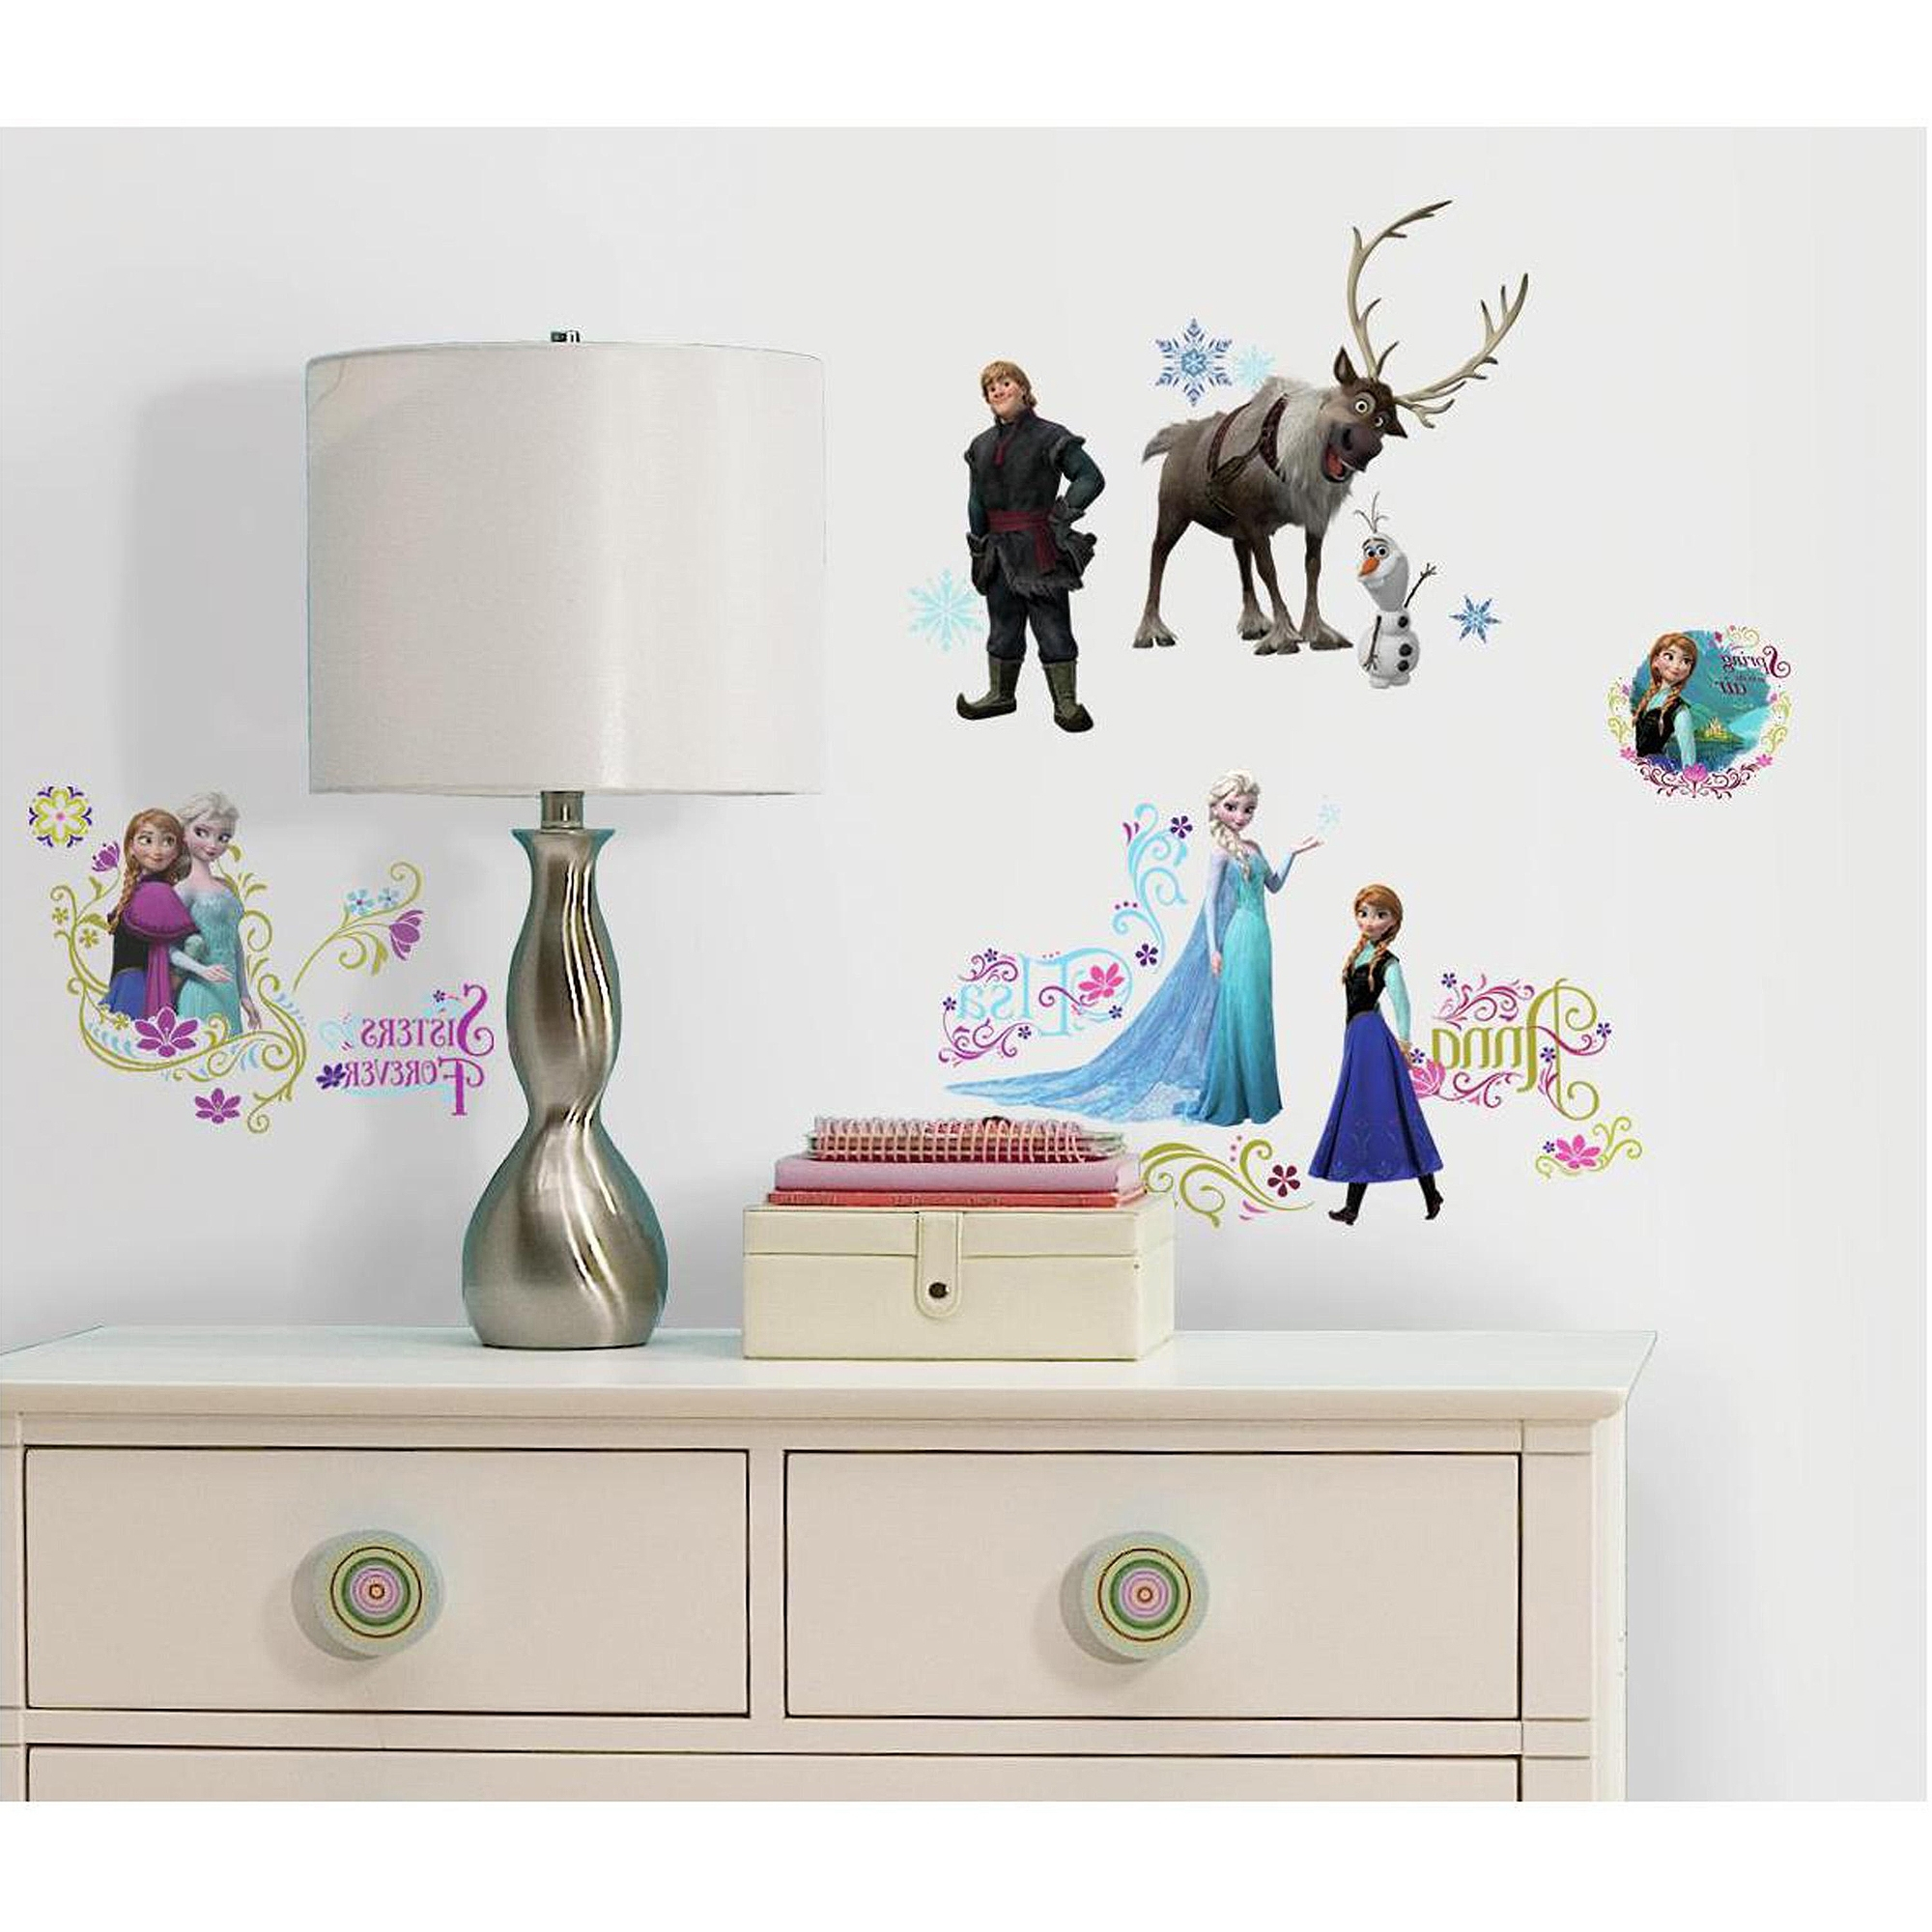 Walmart Wall Stickers Within Most Current Frozen Peel And Stick Wall Decals – Walmart (View 14 of 15)